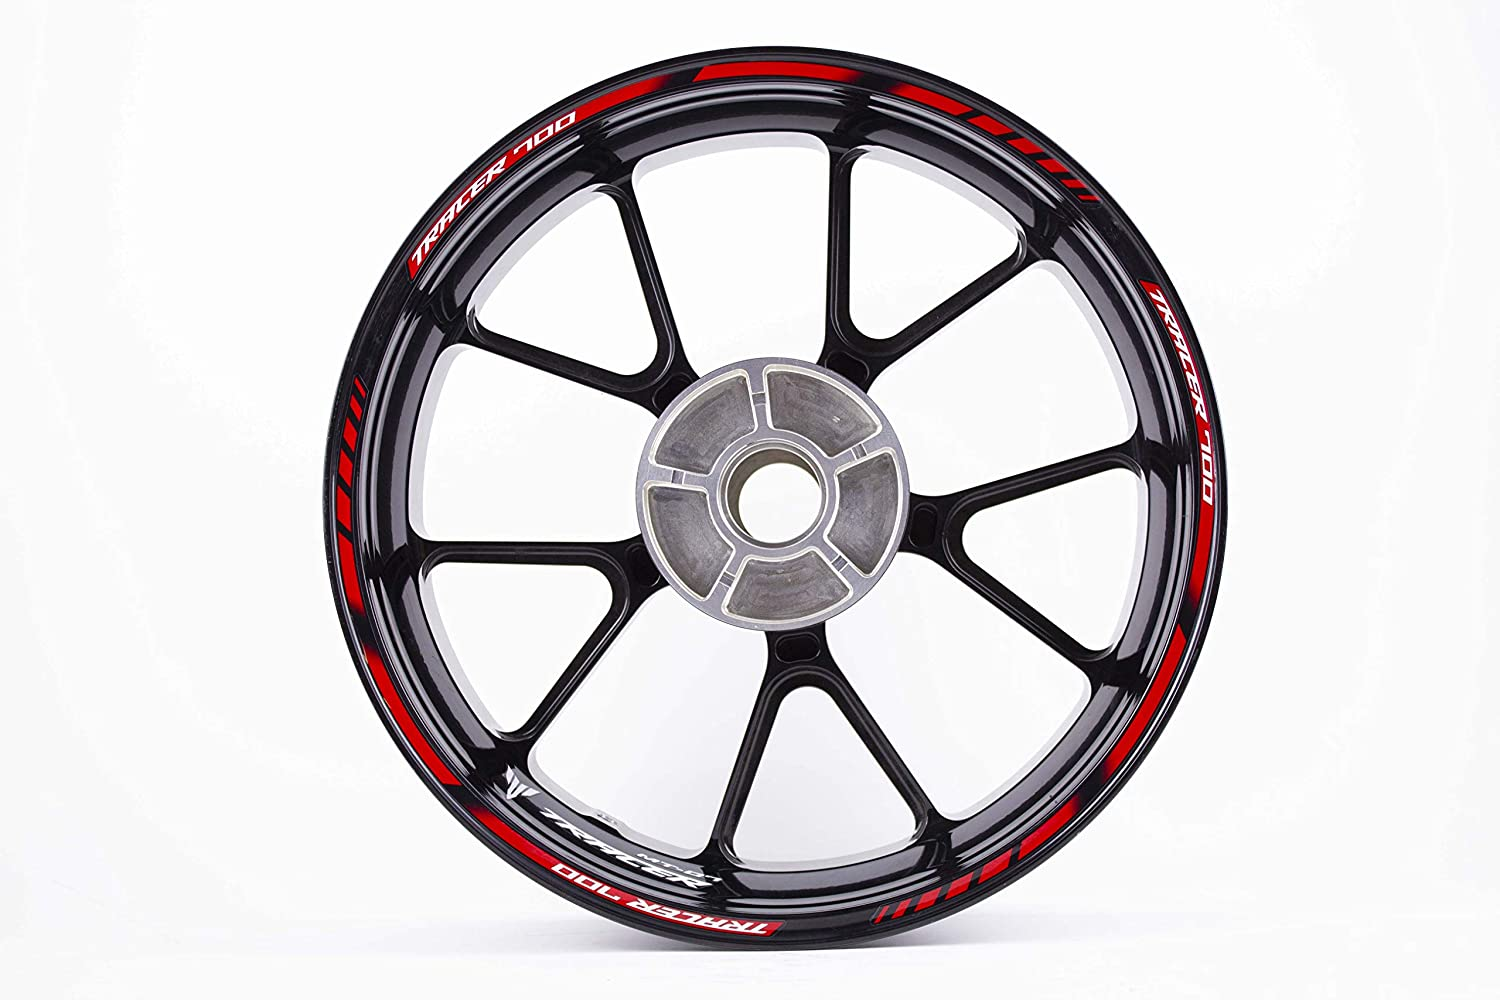 Motorcycle wheel rim decals rimstriping strips accessory sticker for Yamaha MT07 Tracer 700 (Red)